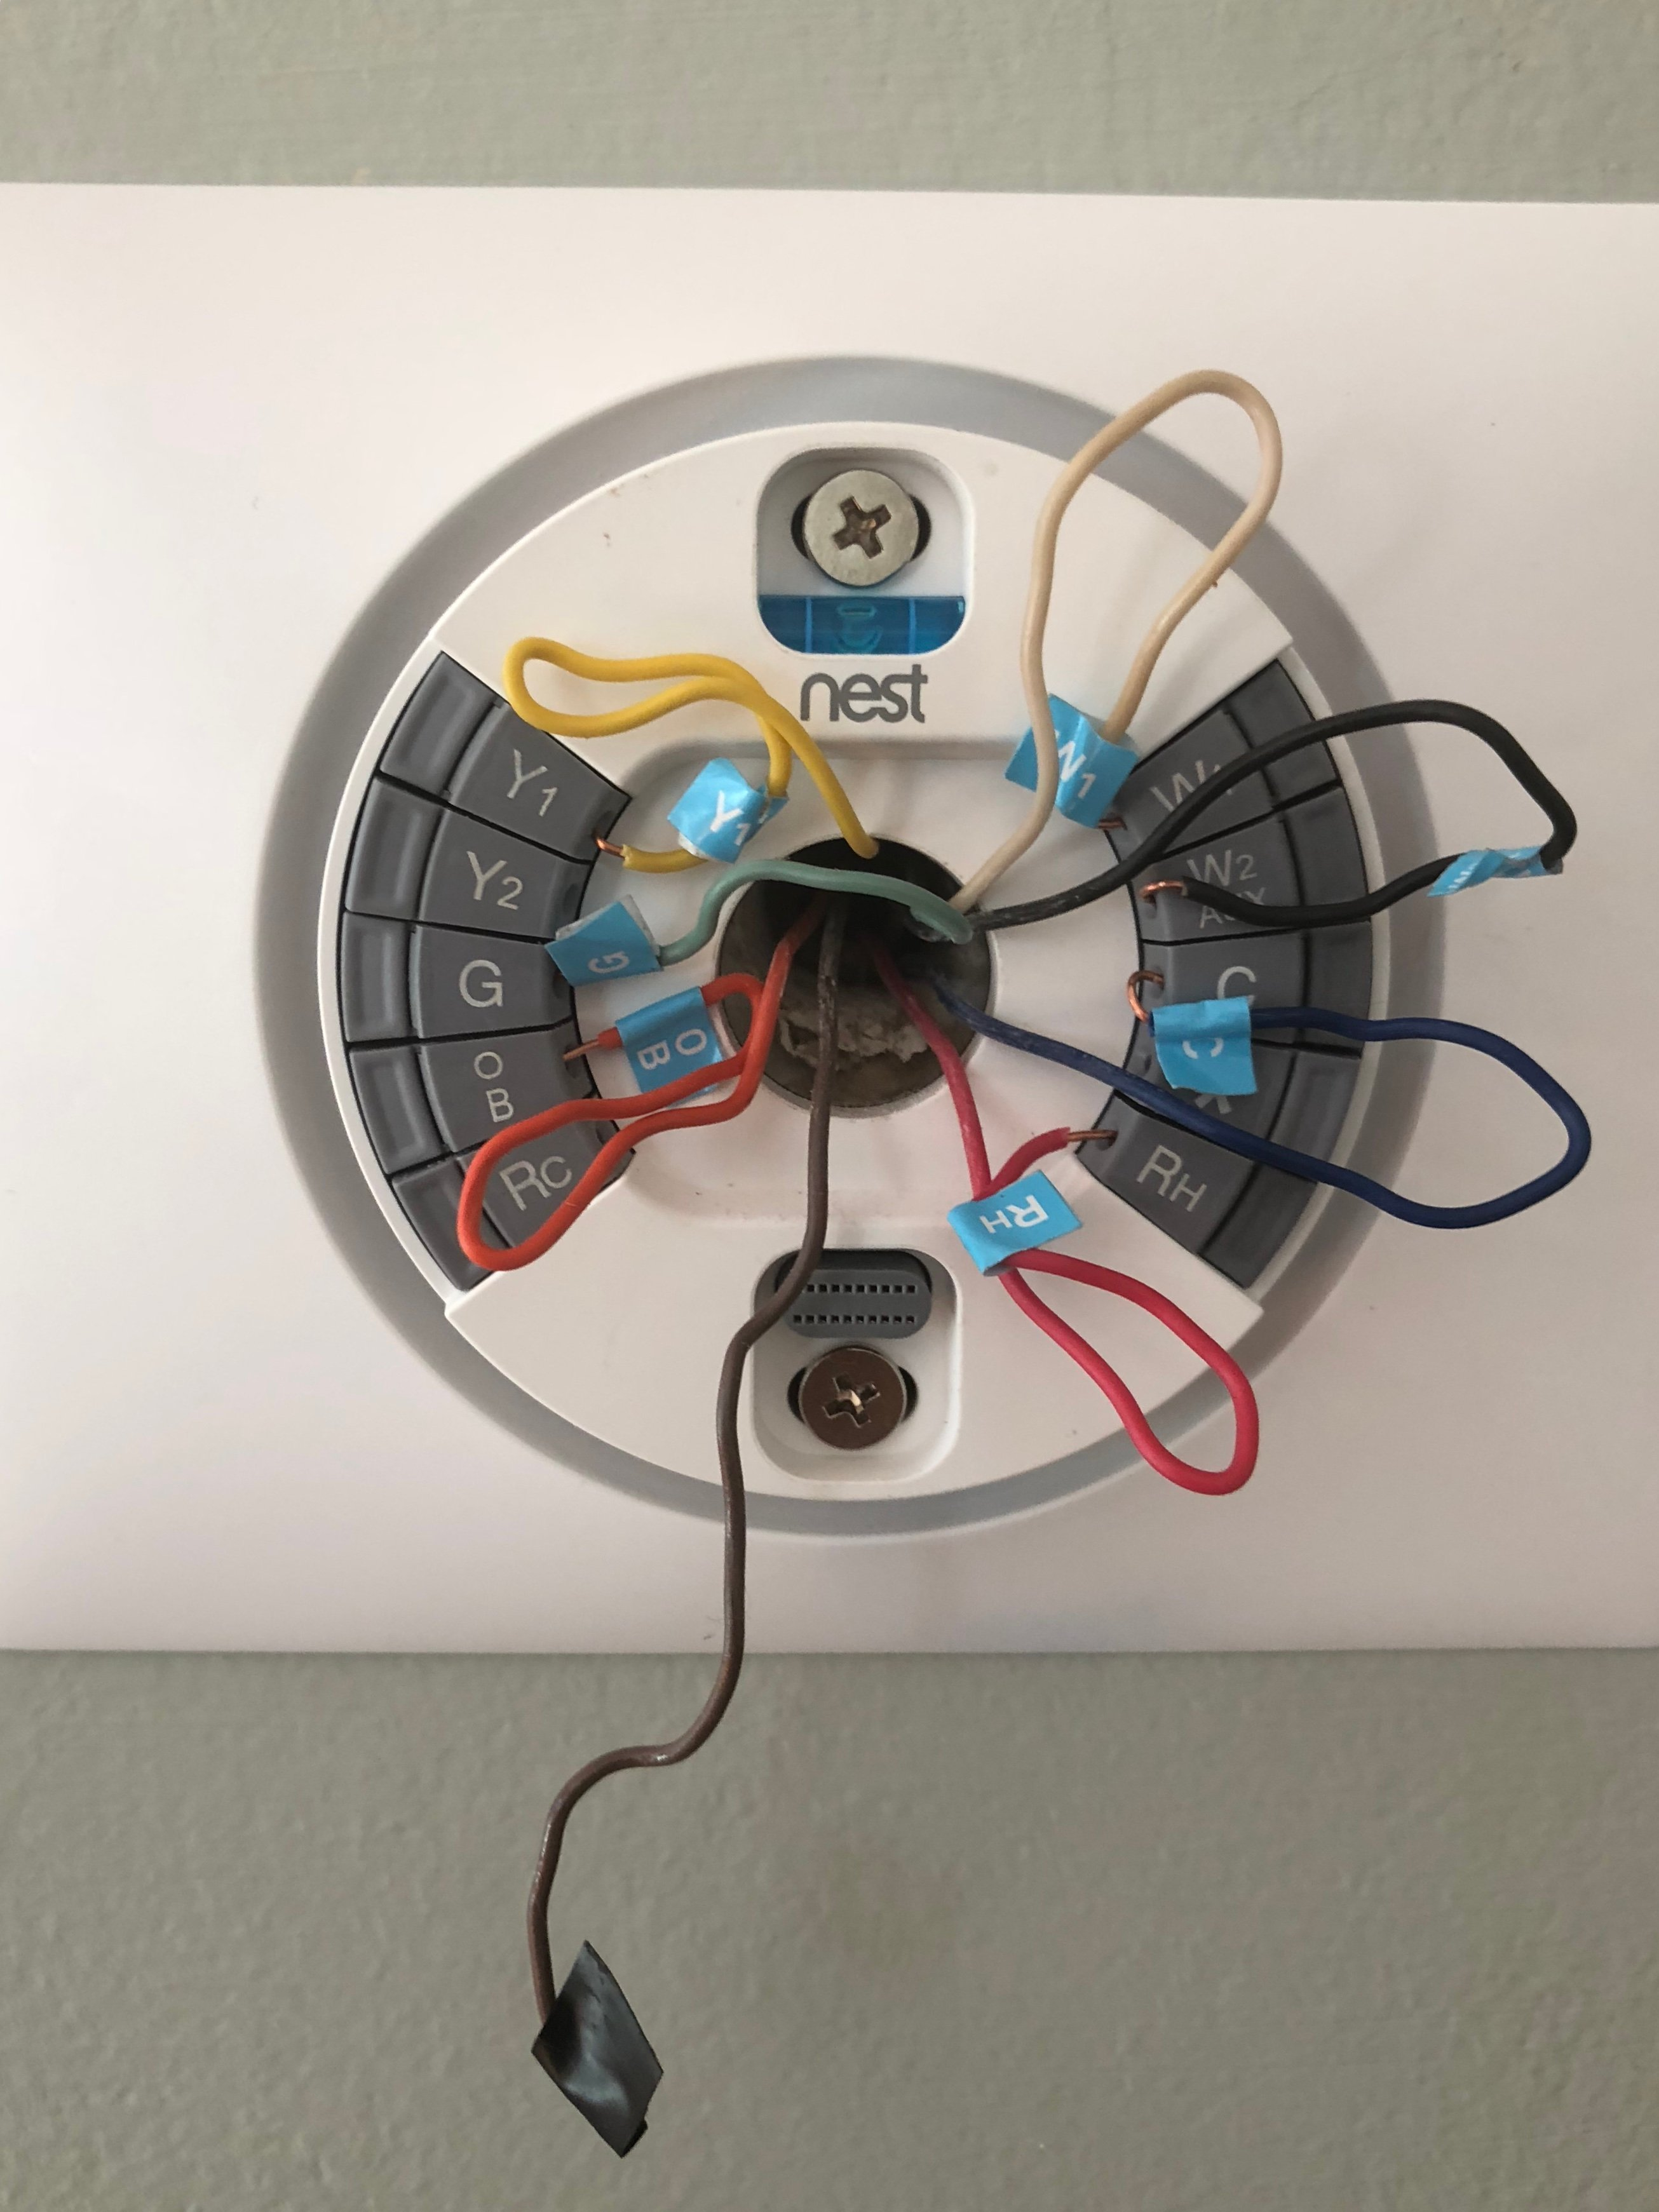 Installing A 3rd Generation Nest Thermostat To Replace Trane